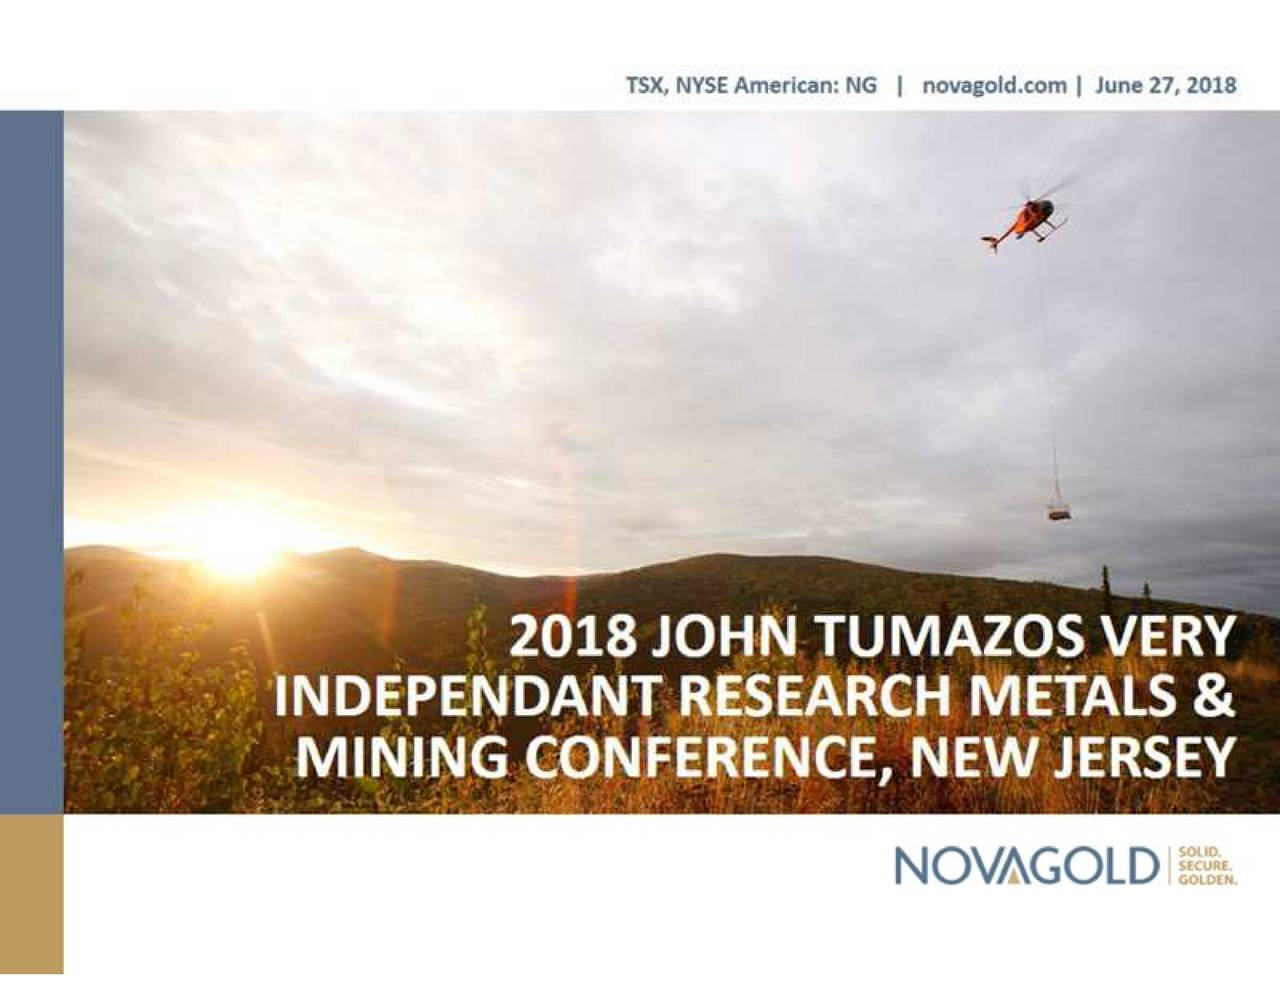 Novagold Resources Ng Presents At John Tumazos Very Independent Research Metals Natural Conference 2018 Slideshow